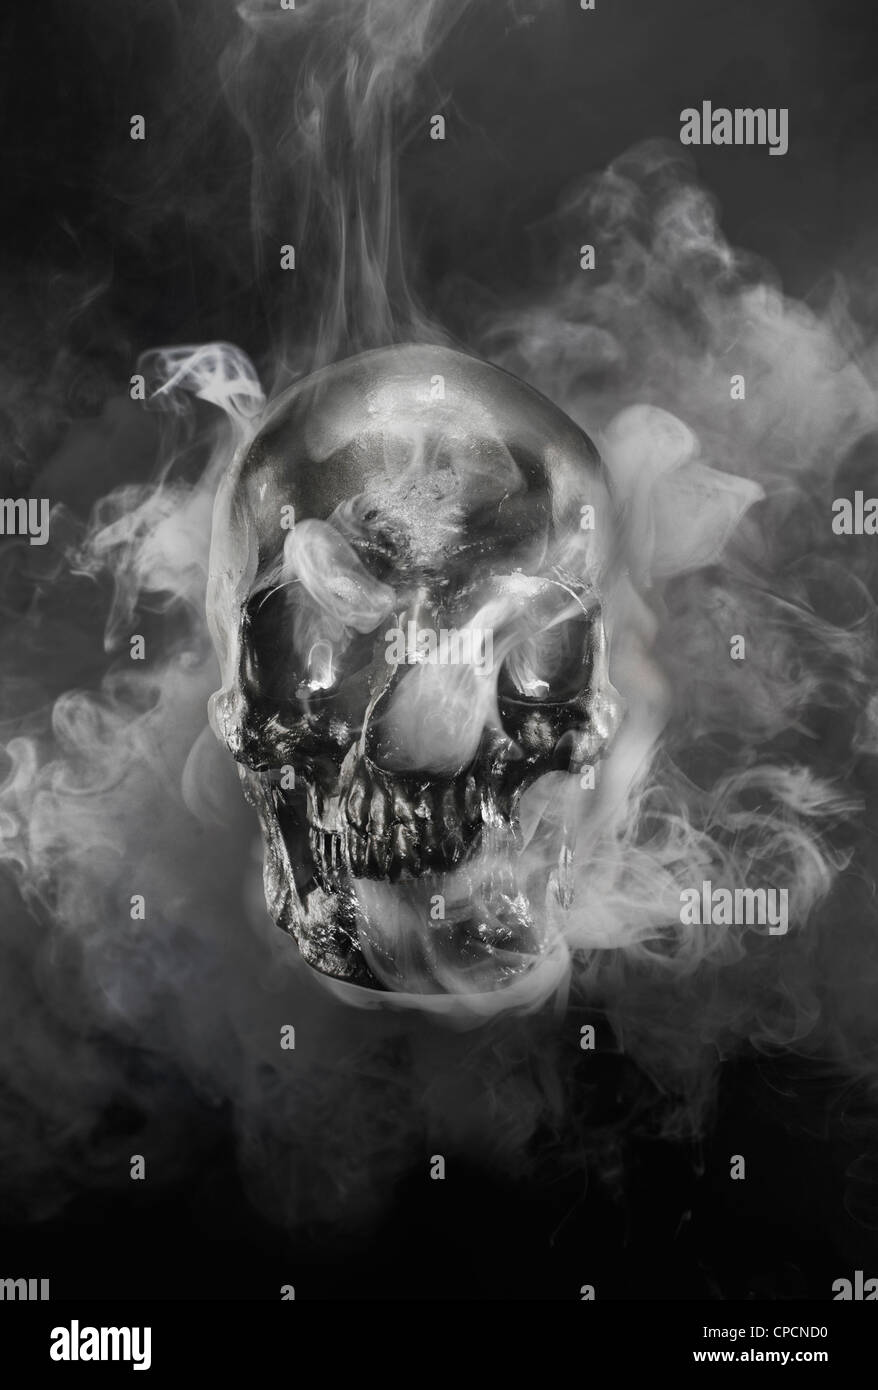 Smoke pouring from metal skull - Stock Image